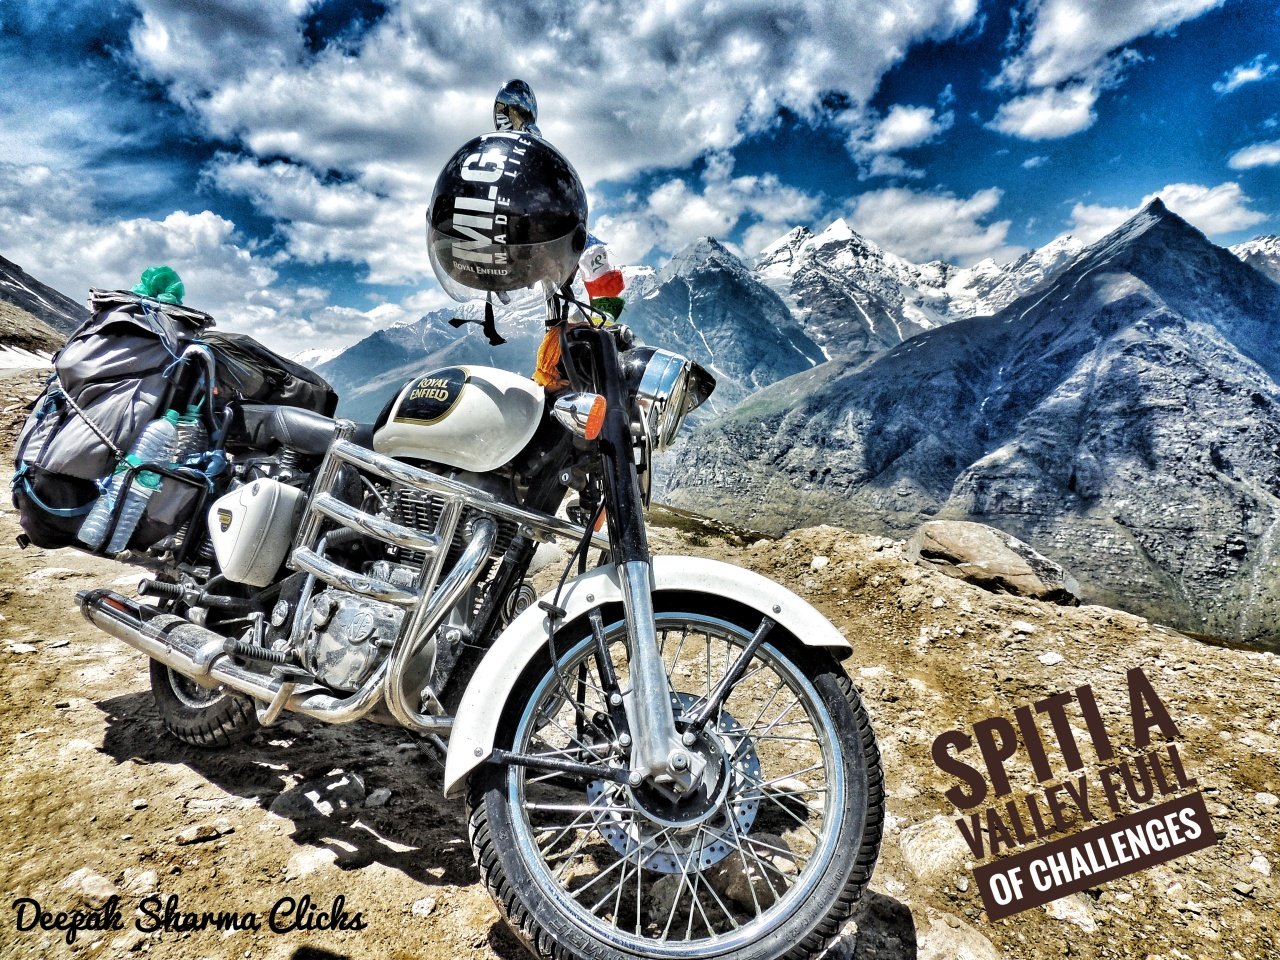 Spiti Bike trip (A Forbidden valley of beauty and challenges)